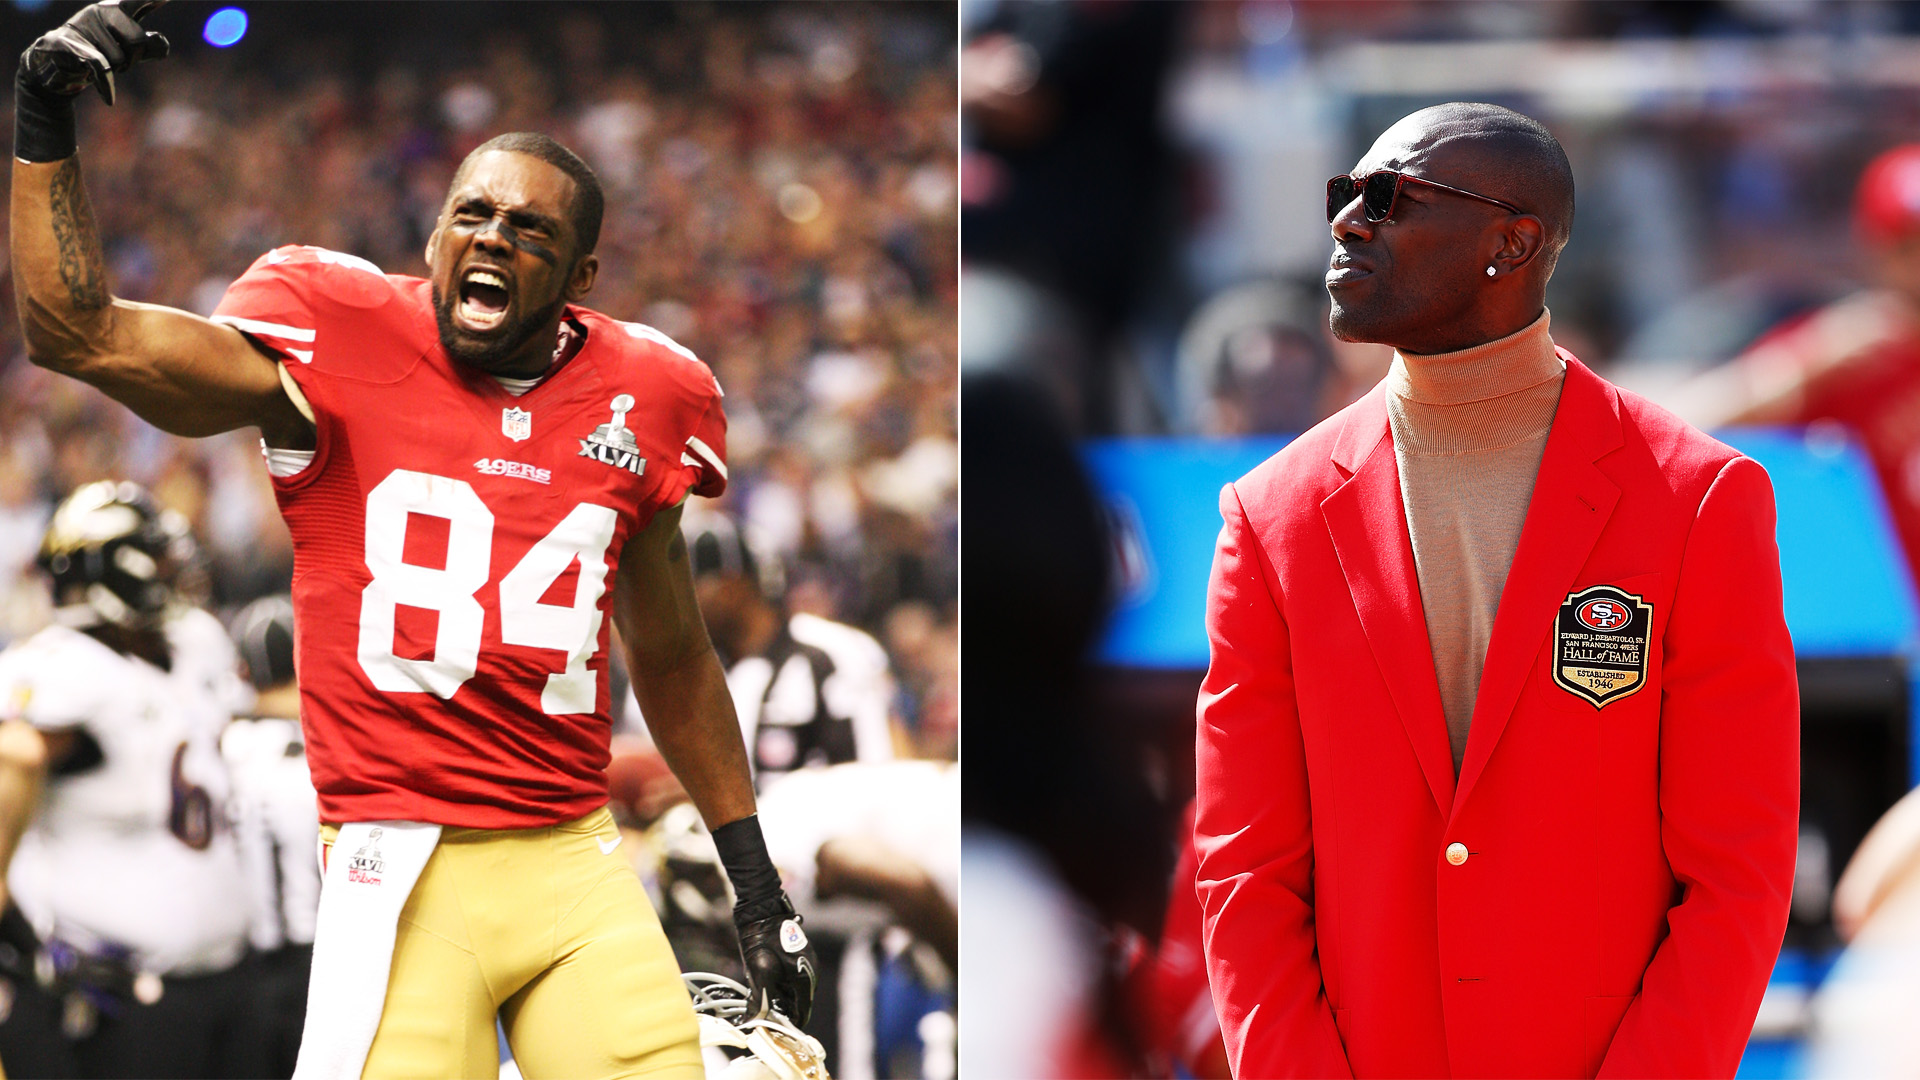 Terrell owens is gay